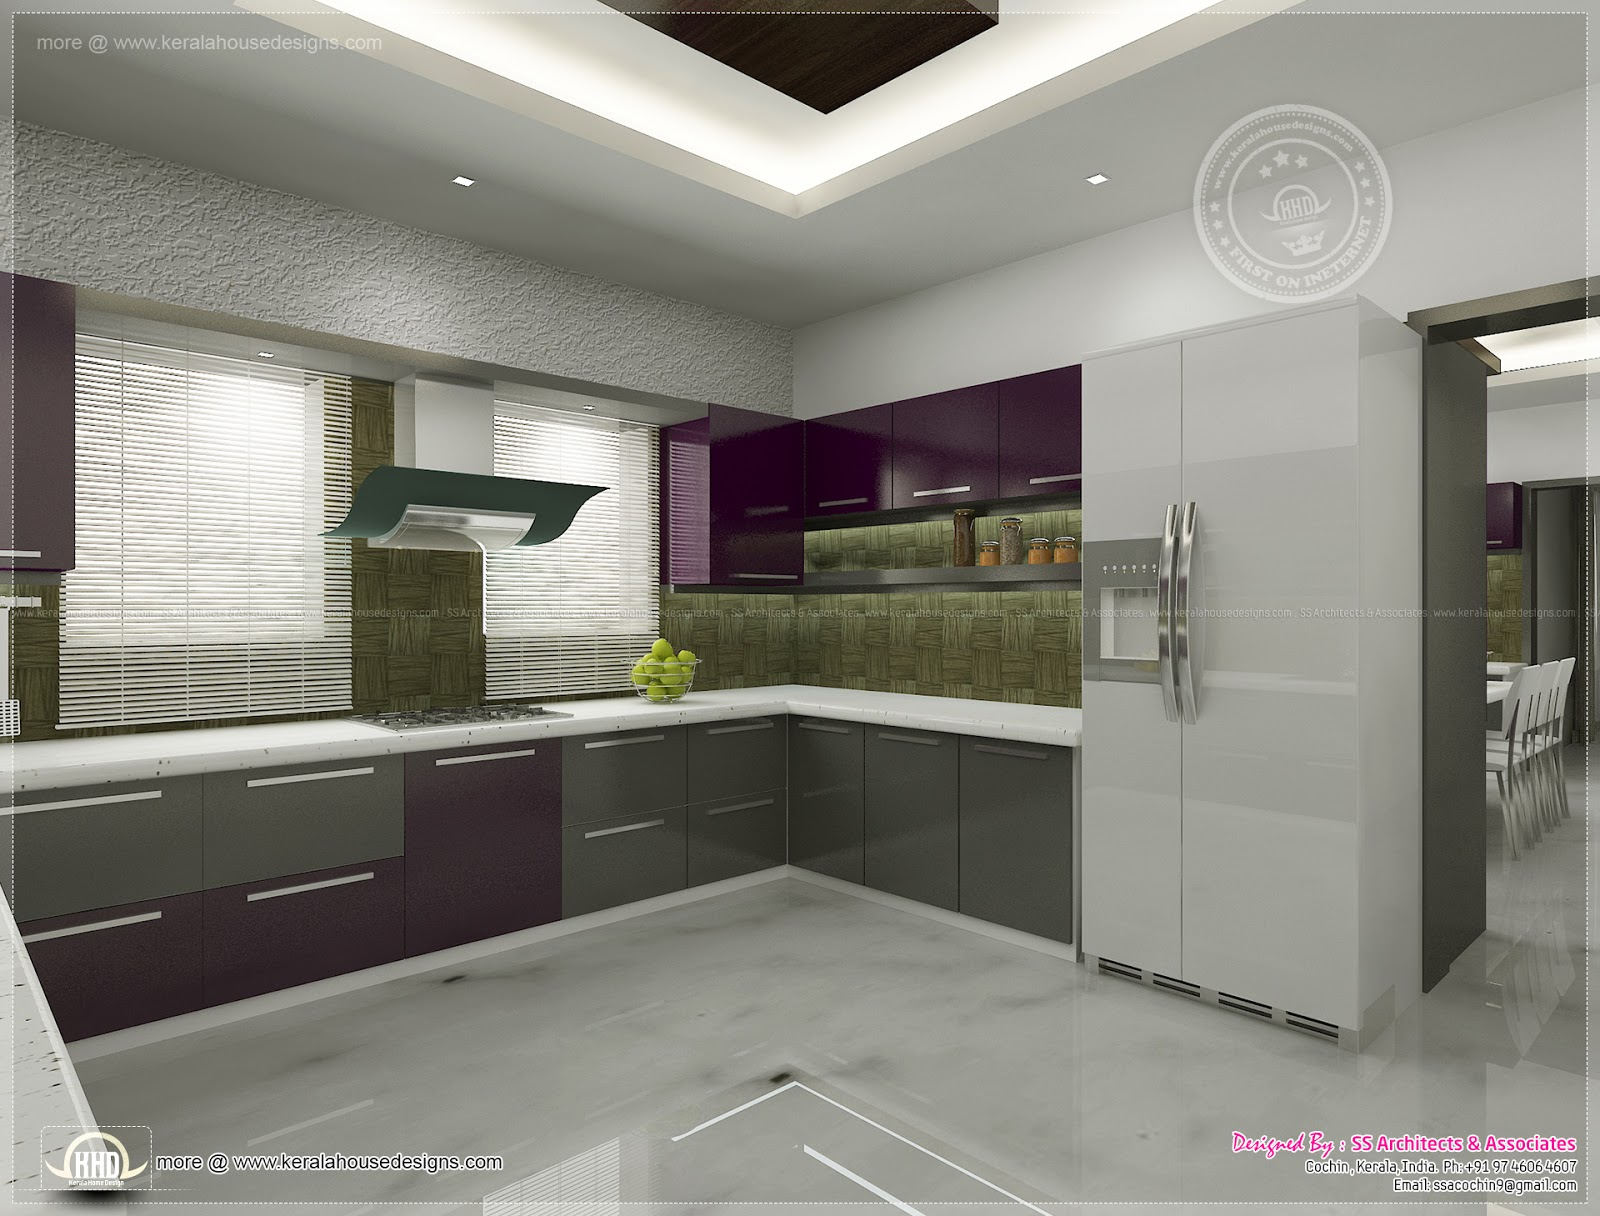 Kitchen interior views by ss architects cochin home kerala plans - Interior designs of houses and kitchens ...